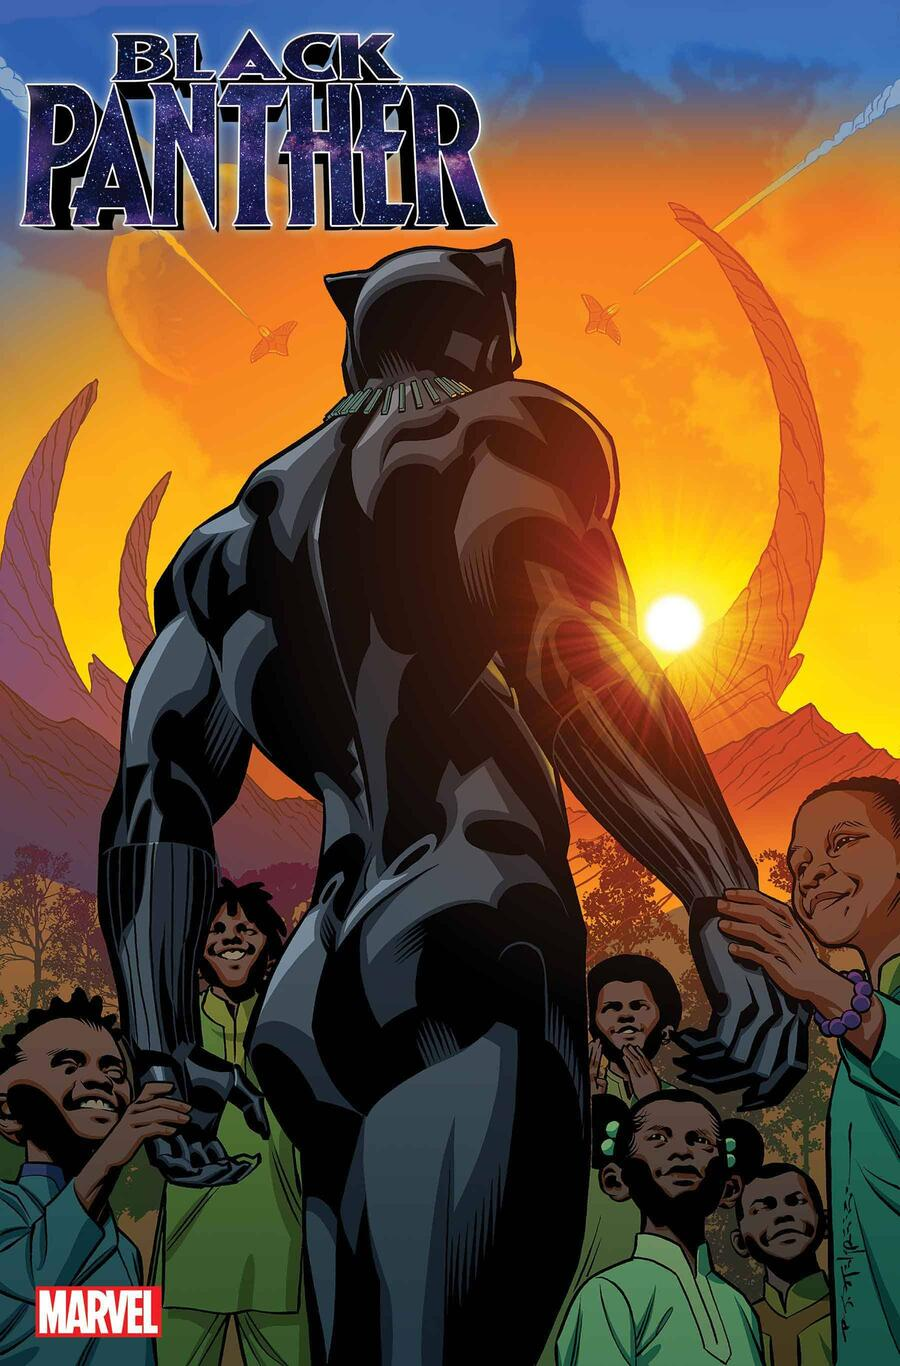 Black Panther variant by Brian Stelfreeze